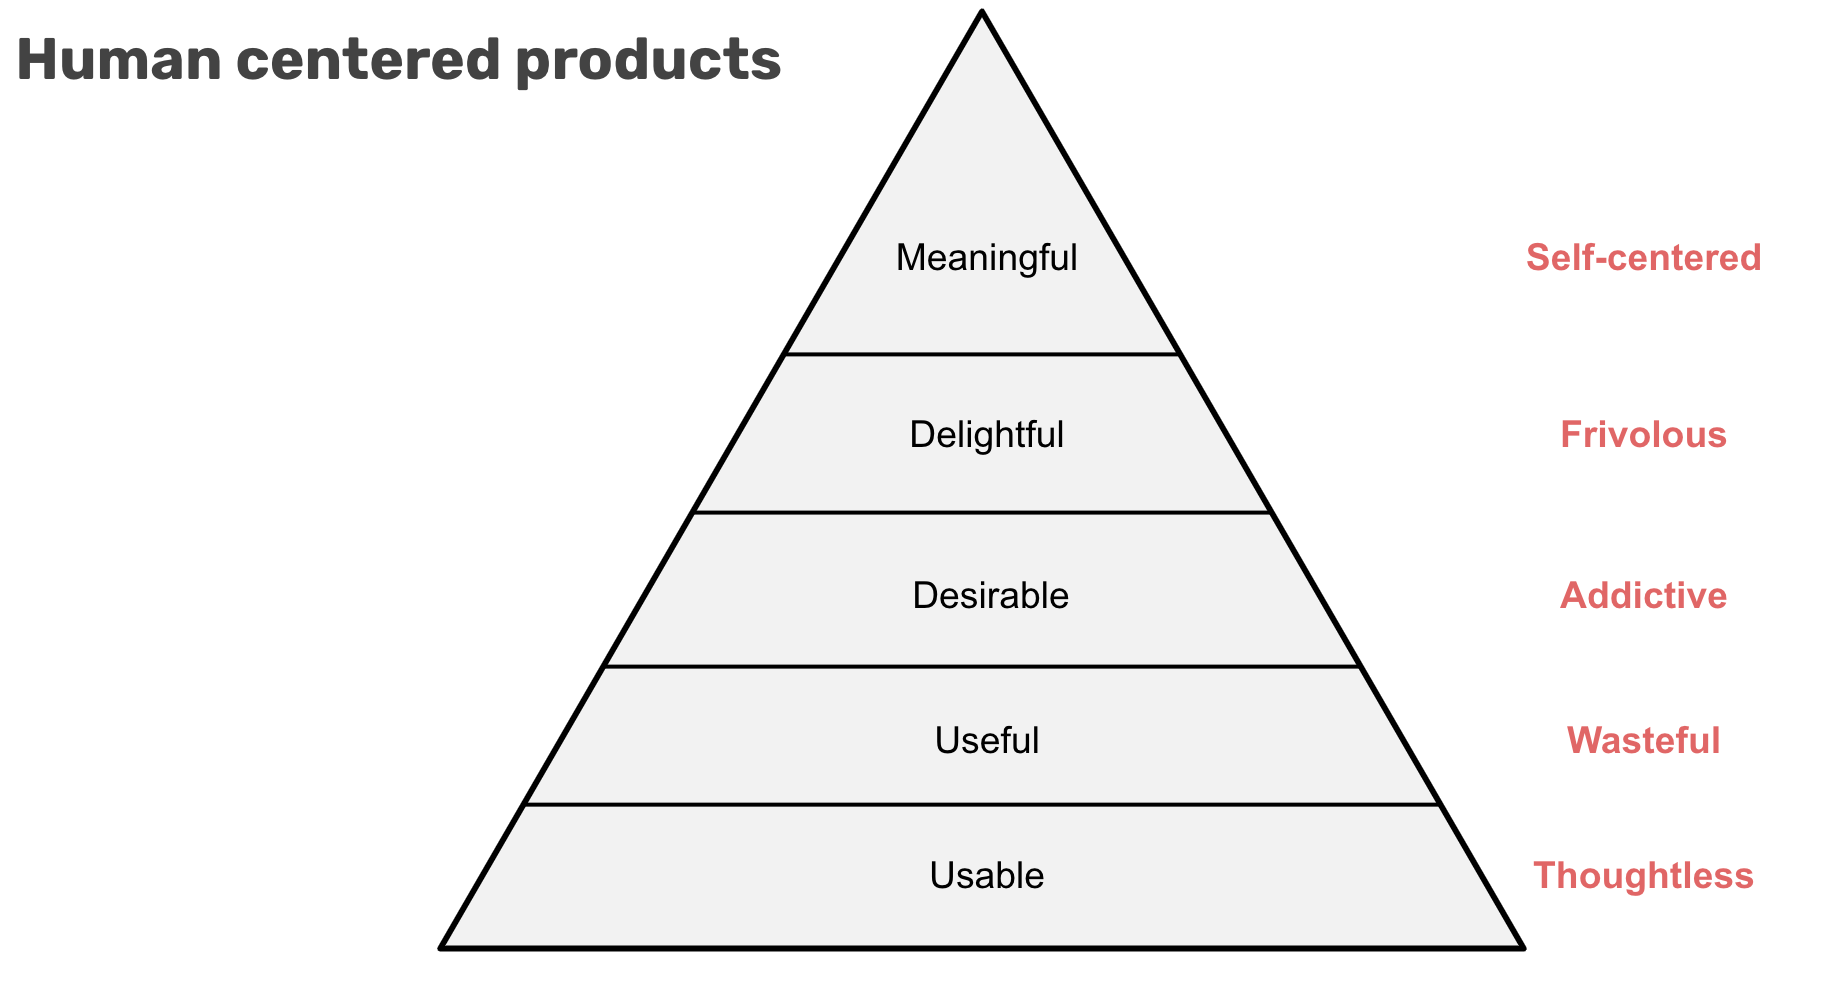 Human centred products can make us thoughtless, wasteful, they can be addictive and frivolous, and can end up making us self centred.